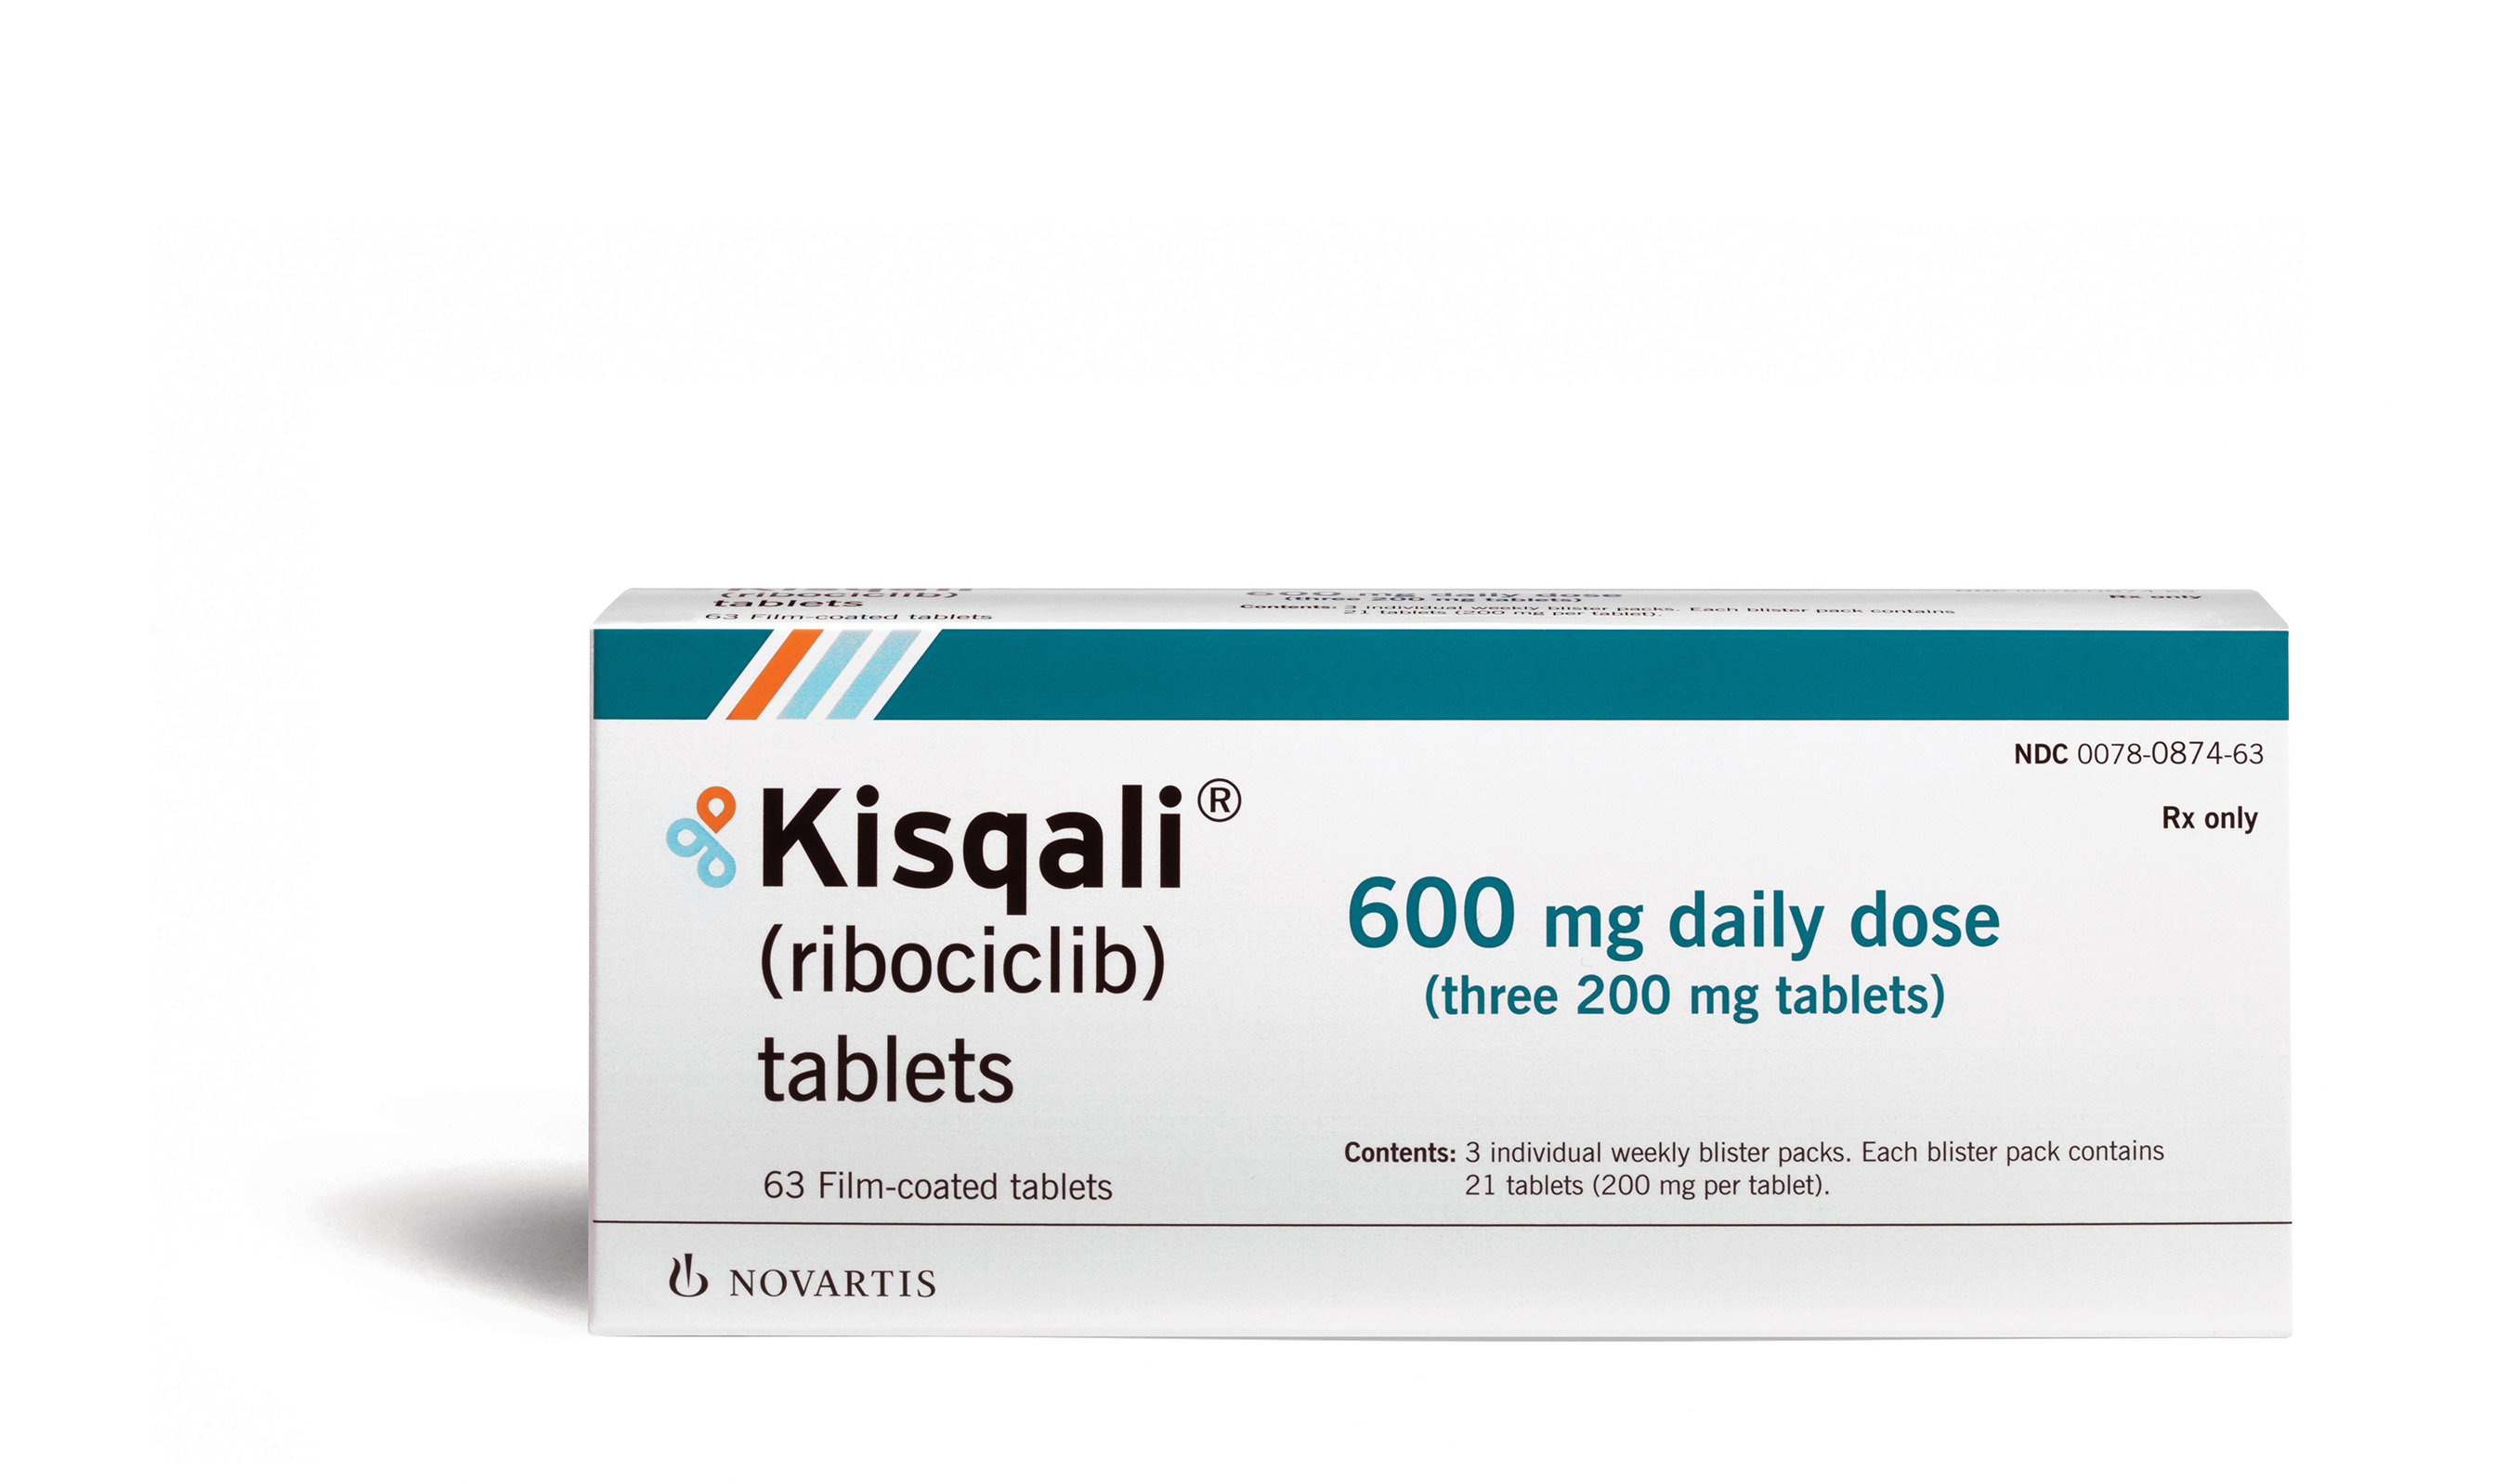 Kisqali Product and Packaging